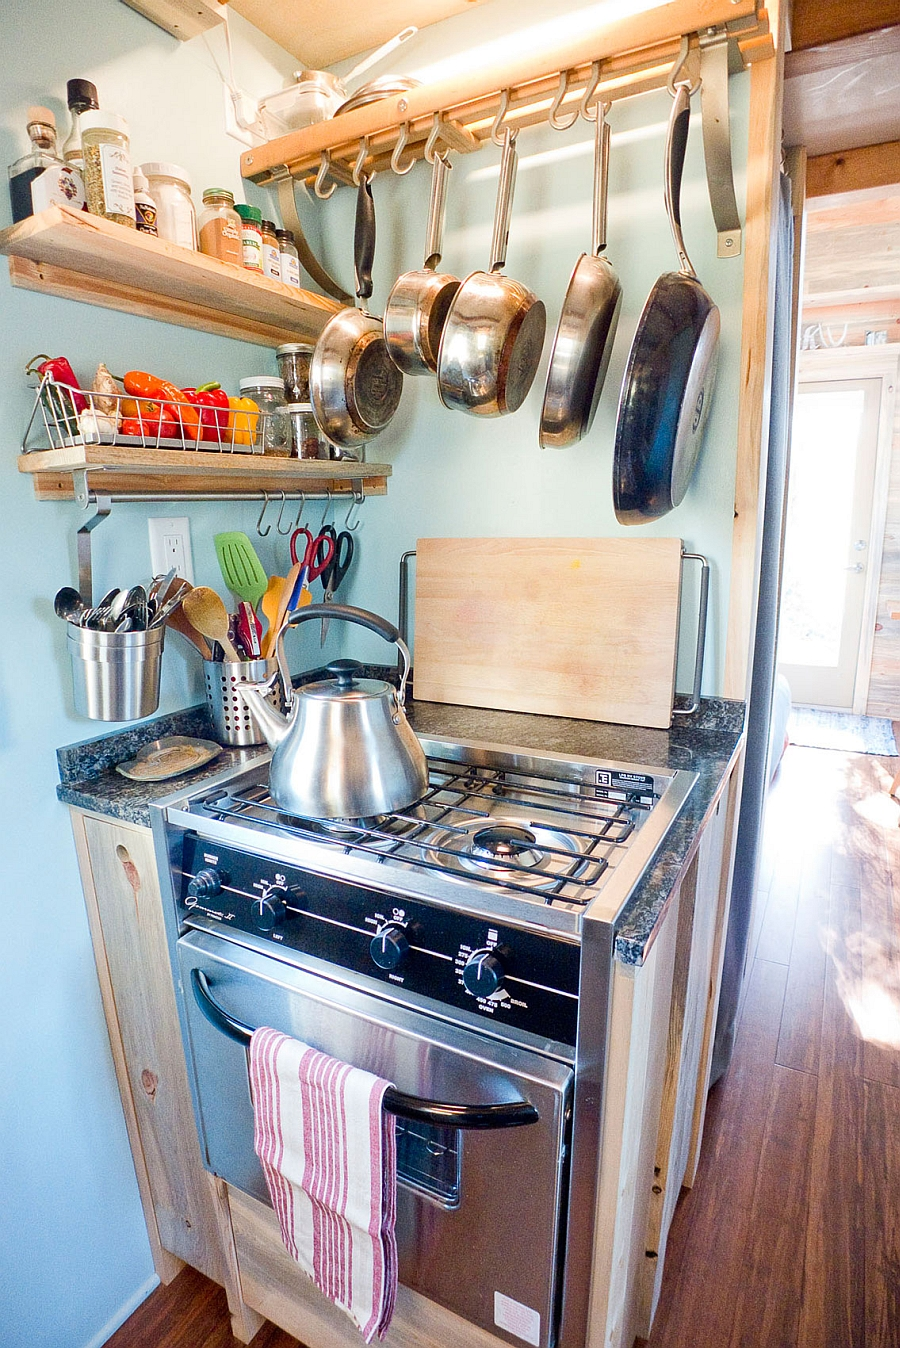 A pot rack saves up space in compact kitchens